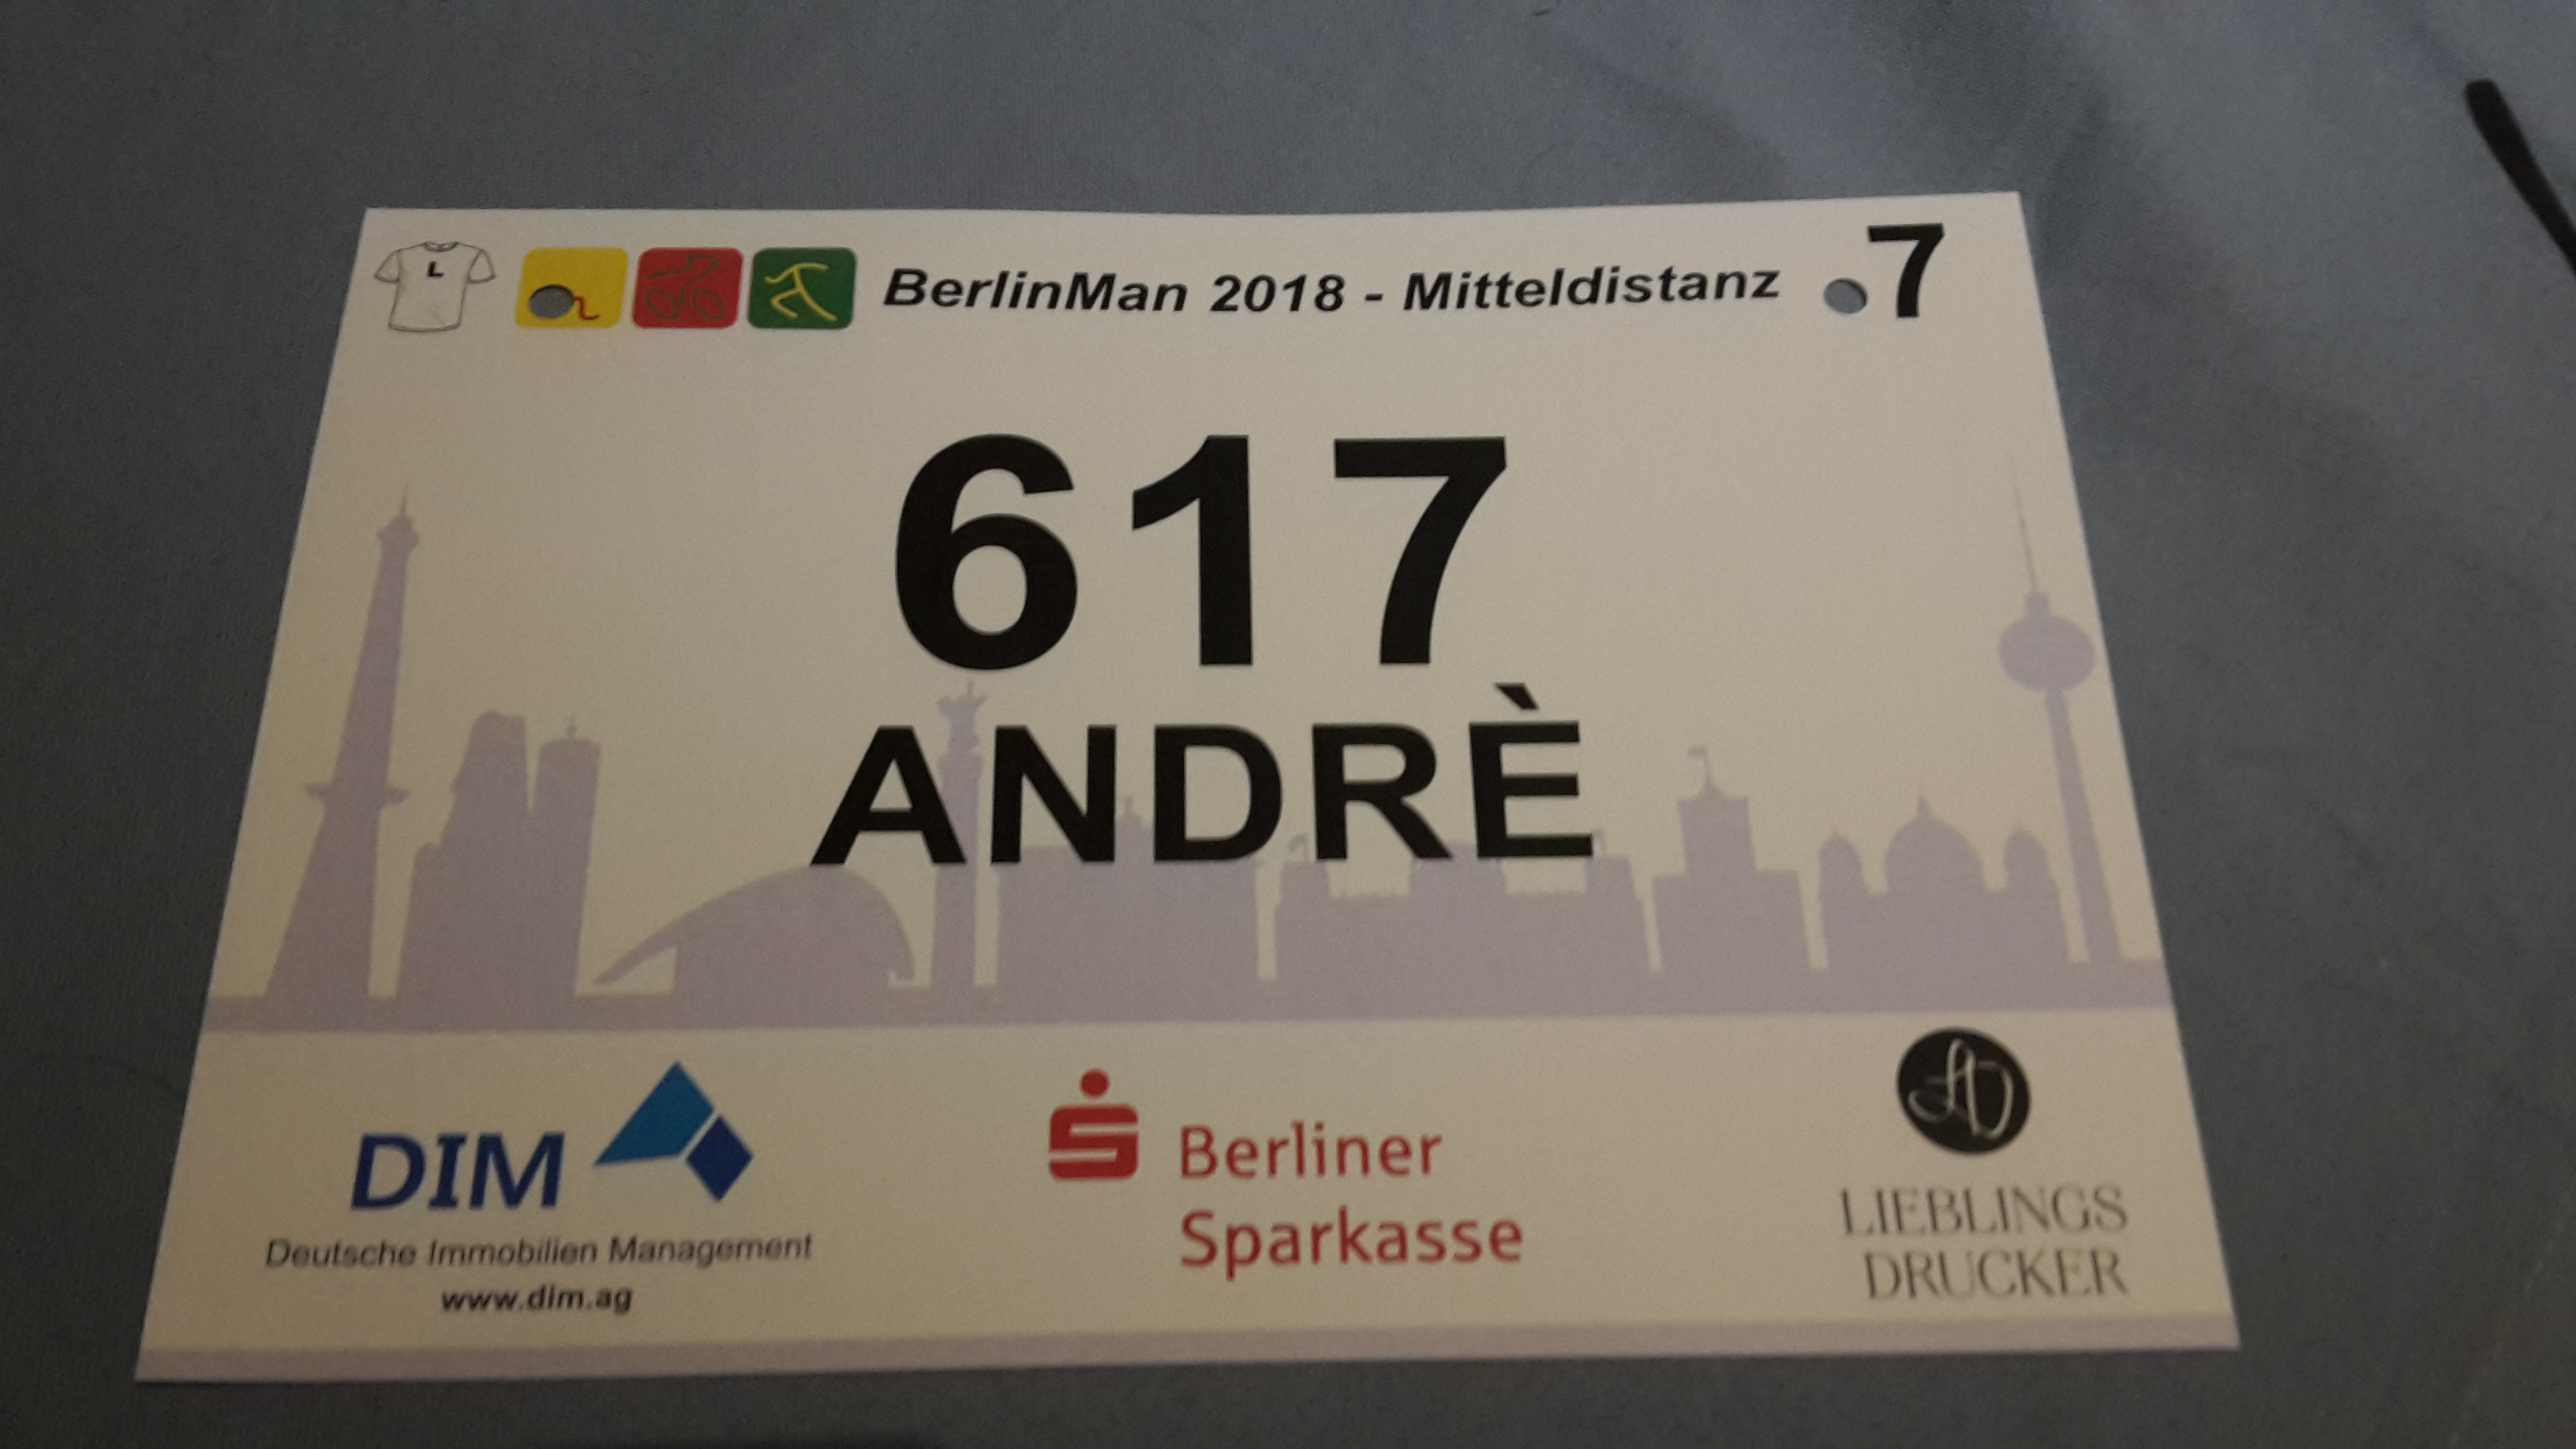 BerlinMan 2018 Race